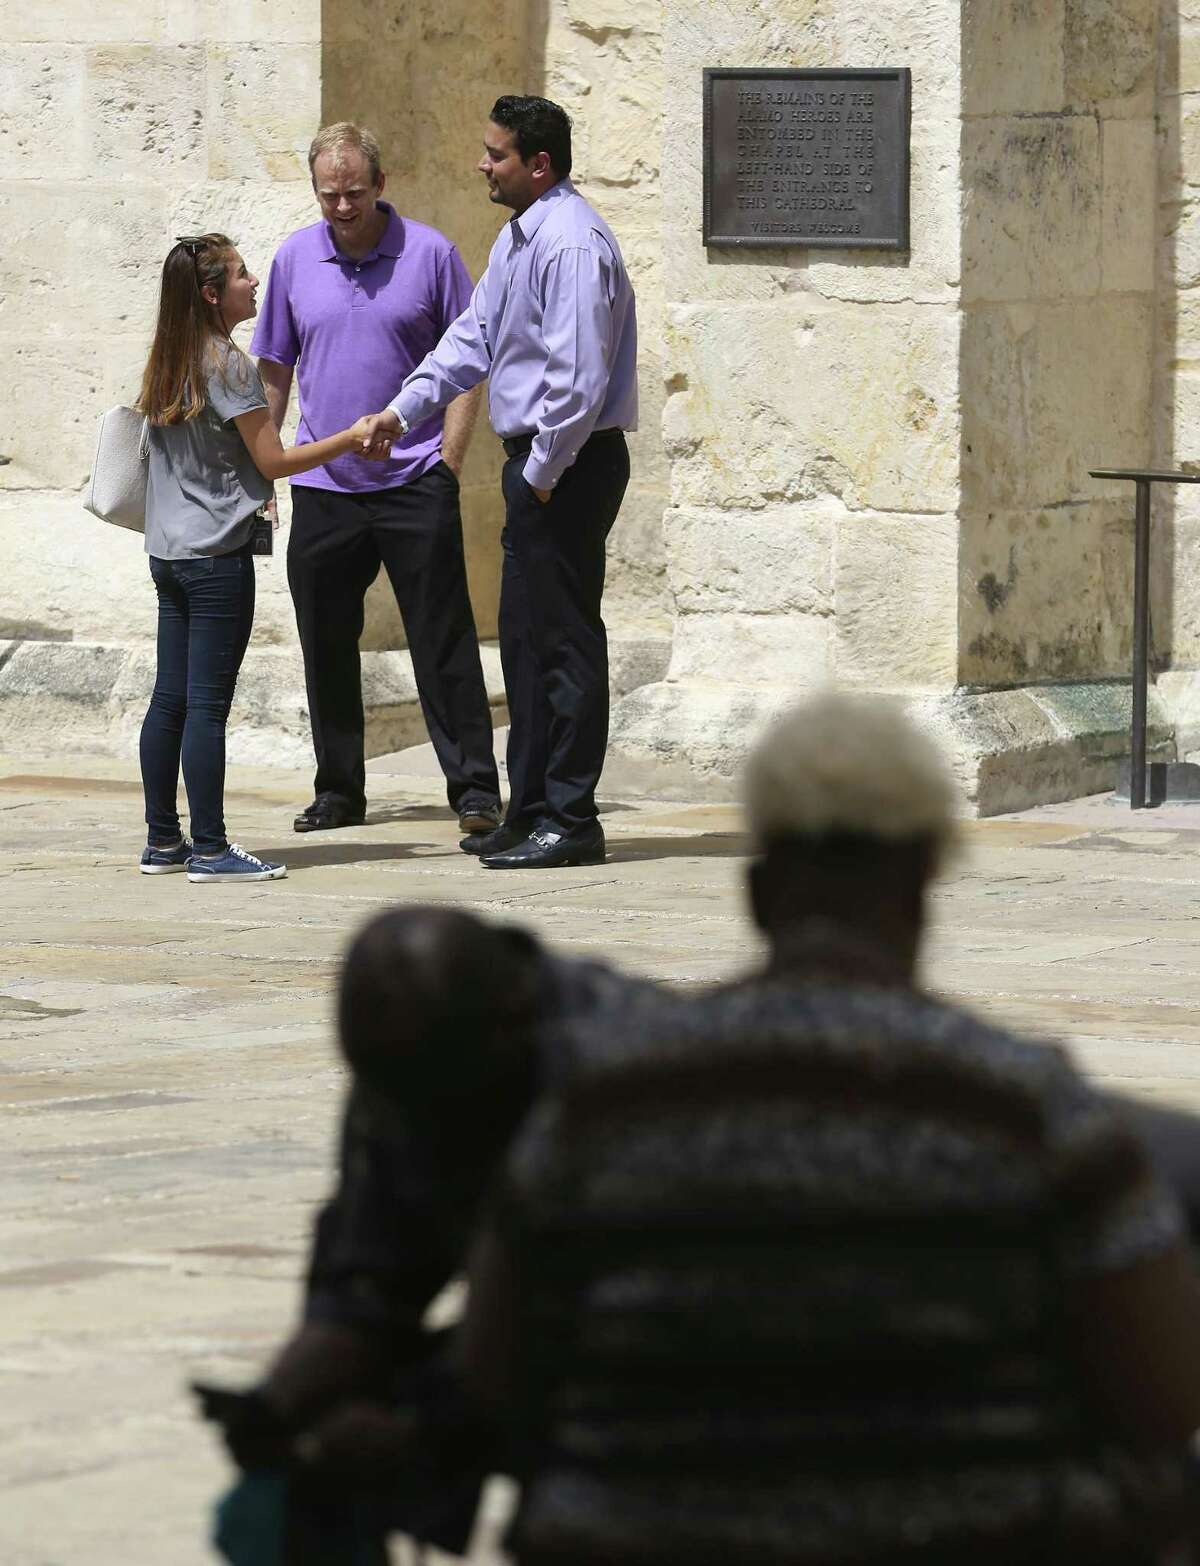 """Mitesh Patel, standing right, shakes hands with a reporter July 10, 2018, at Main Plaza while attorney Jeff Newberry listens to them. Patel is the son of 2004 murder victim, Hasmukh """"Hash"""" Patel, whose killer, Christopher Anthony Young, is scheduled to be executed July 17. The younger Patel was in Main Plaza to show support for the people holding a news conference urging clemency for Young."""